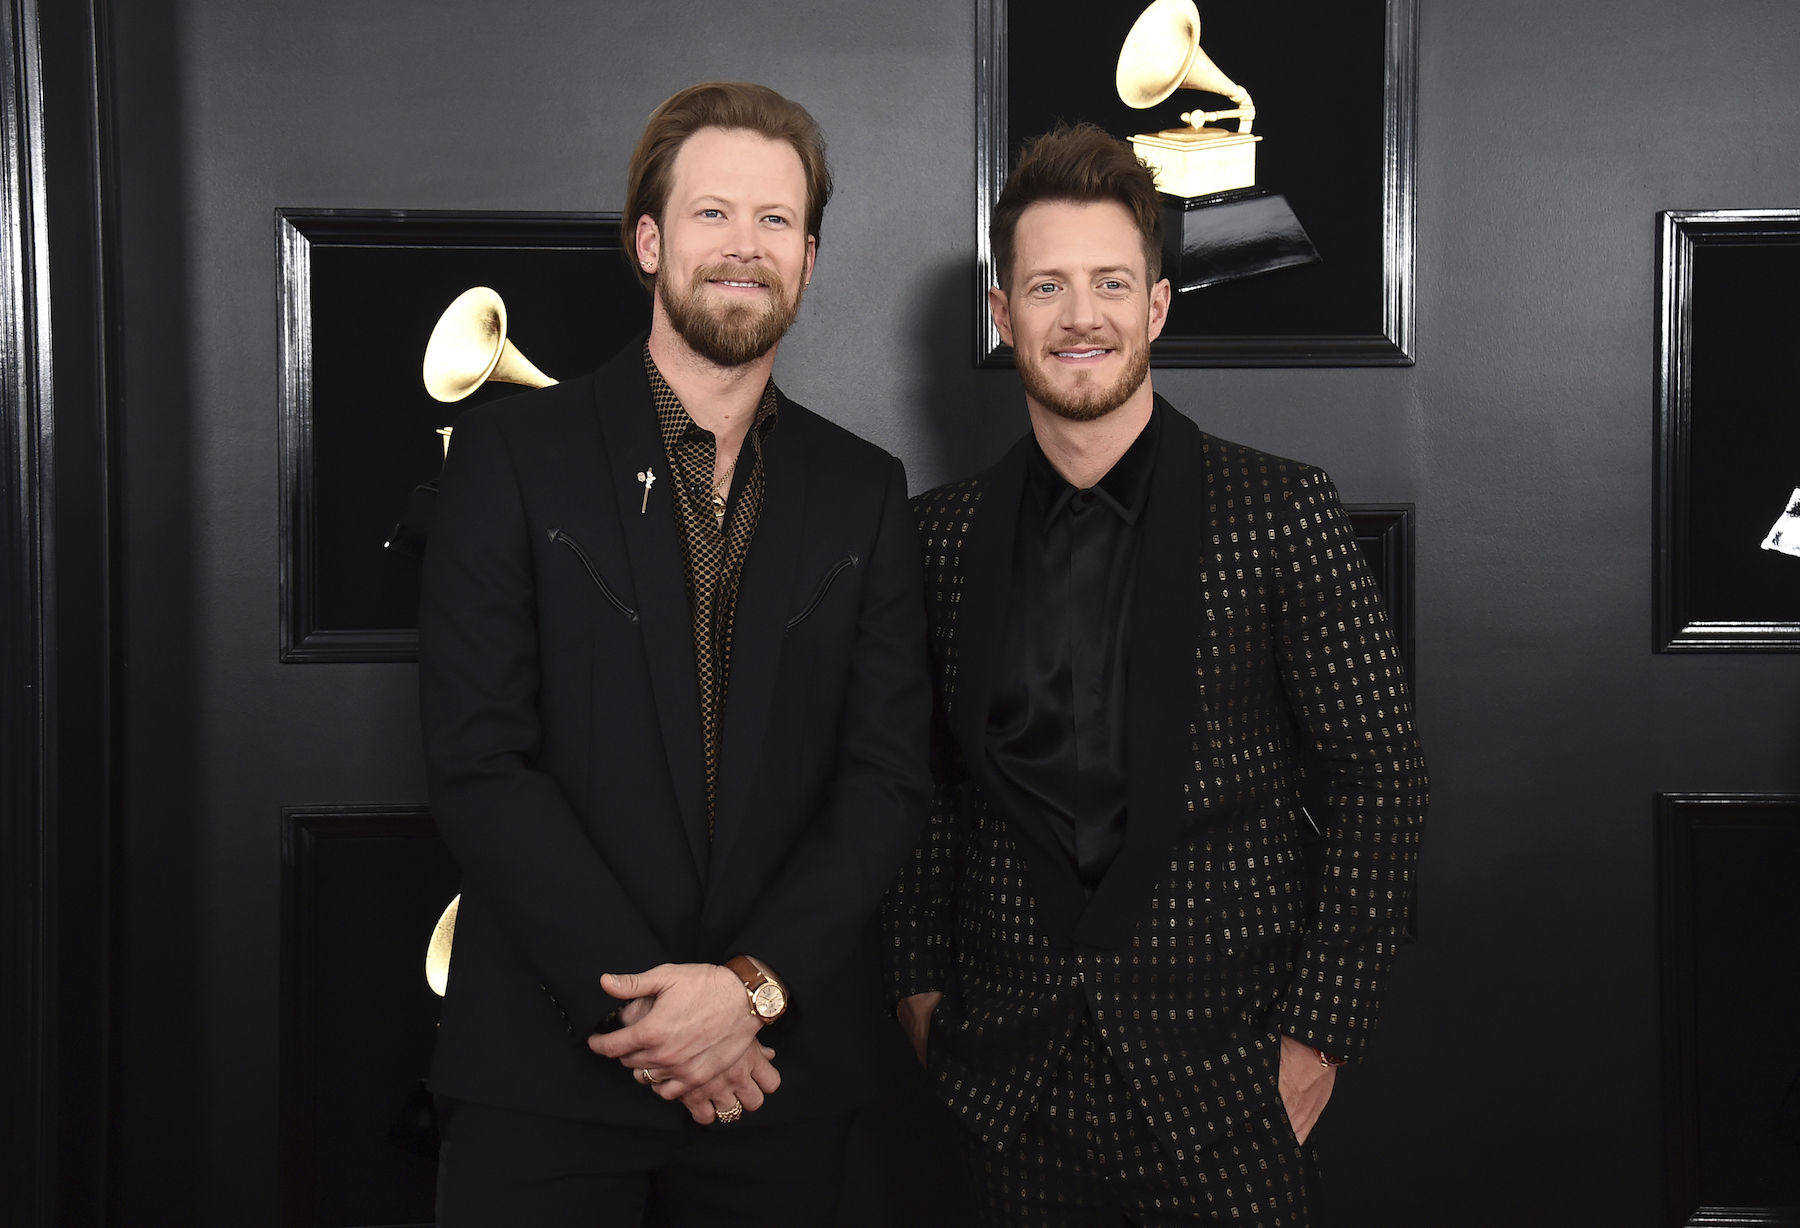 "<div class=""meta image-caption""><div class=""origin-logo origin-image ap""><span>AP</span></div><span class=""caption-text"">Brian Kelley, left, and Tyler Hubbard of Florida Georgia Line arrive at the 61st annual Grammy Awards at the Staples Center on Sunday, Feb. 10, 2019, in Los Angeles. (Jordan Strauss/Invision/AP)</span></div>"